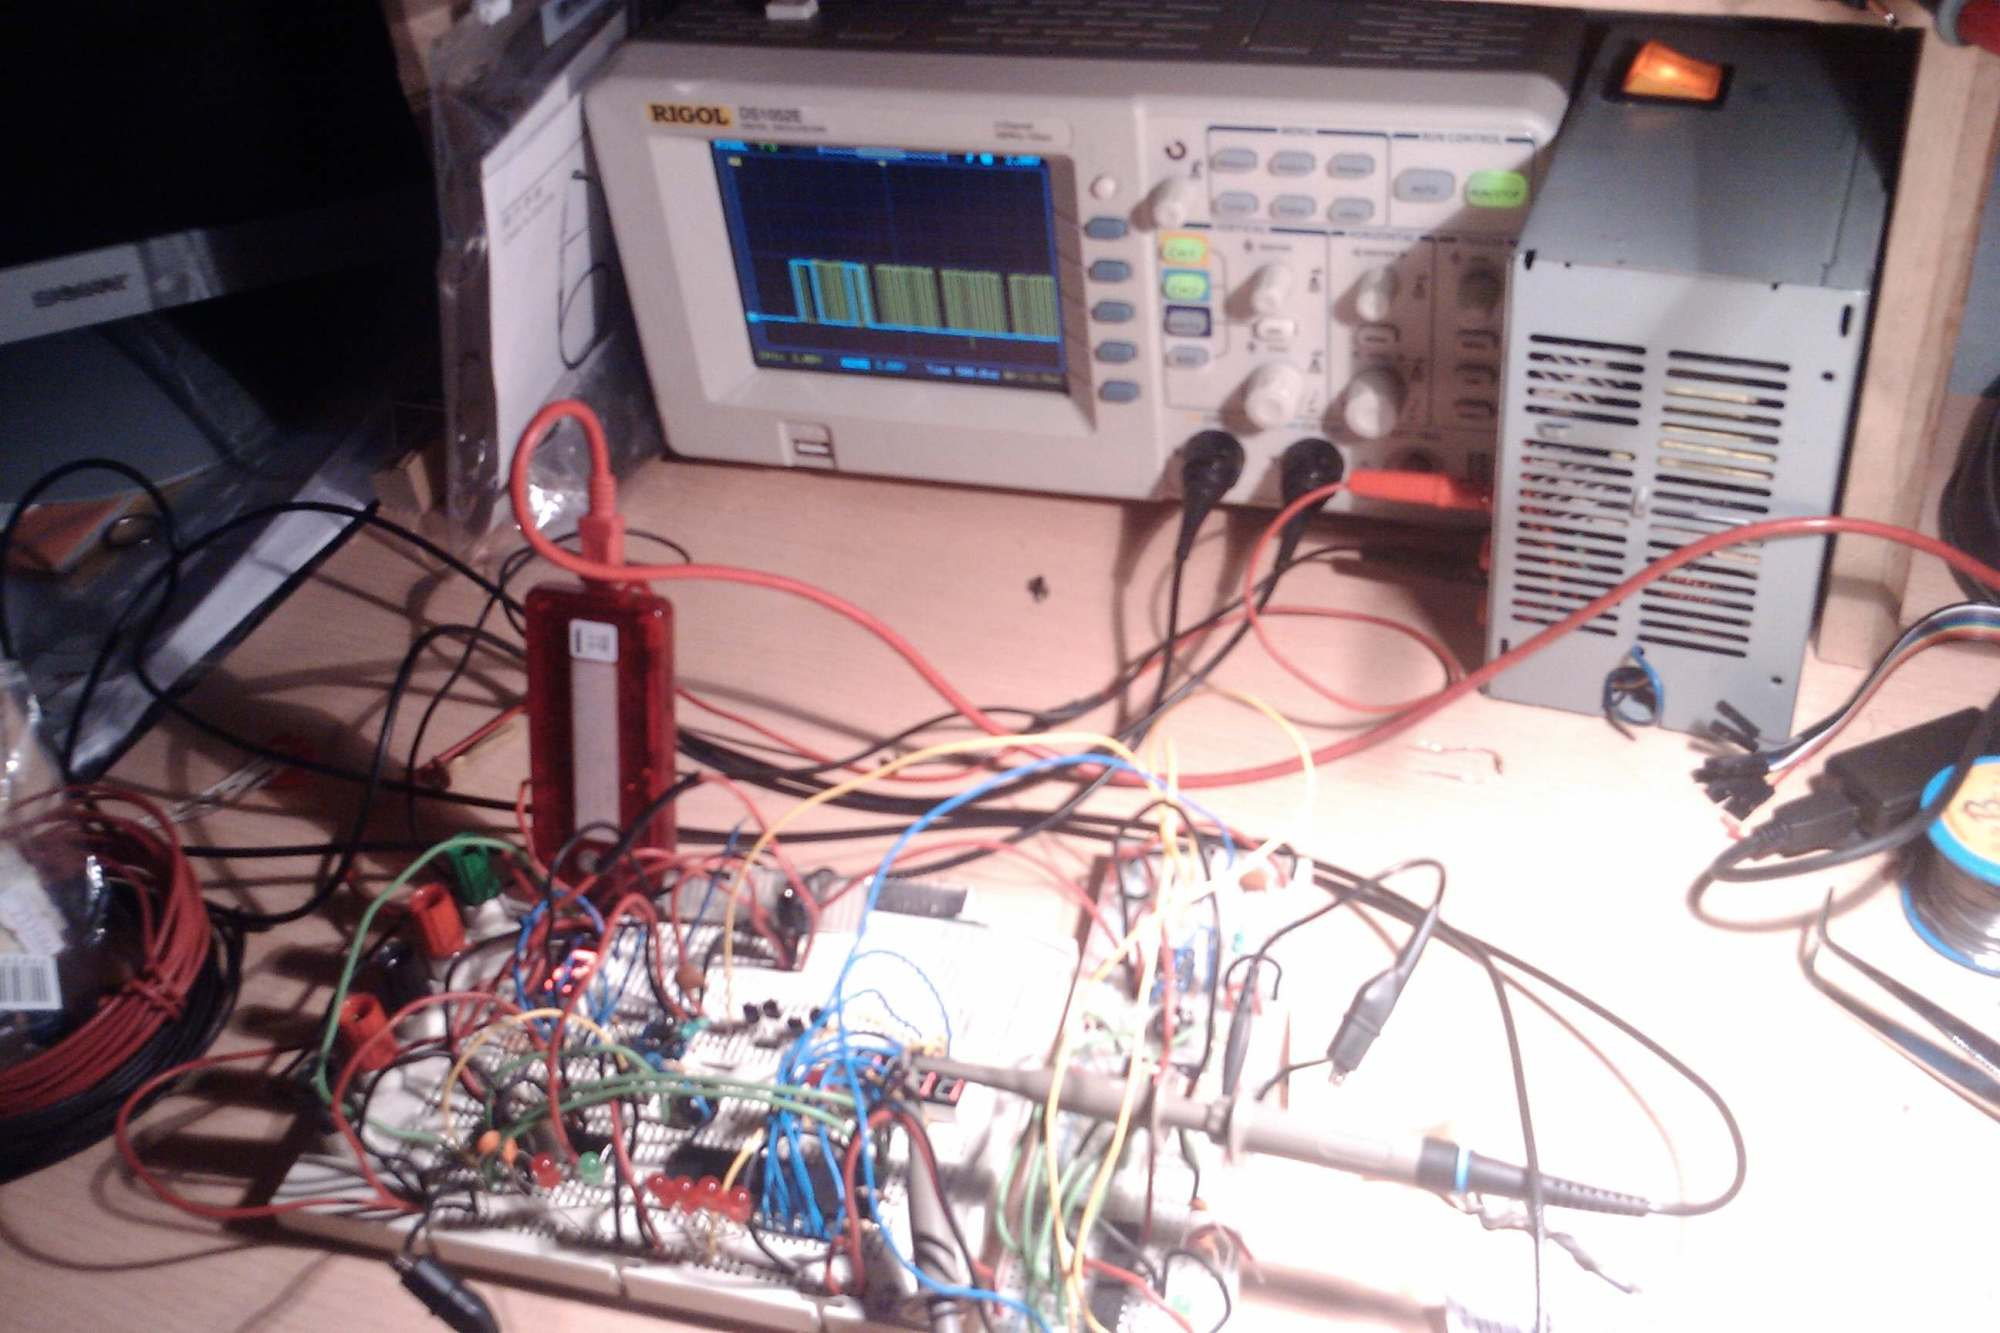 hight resolution of source momex cat content protoboard with power supply and oscilloscope source momex cat content wire